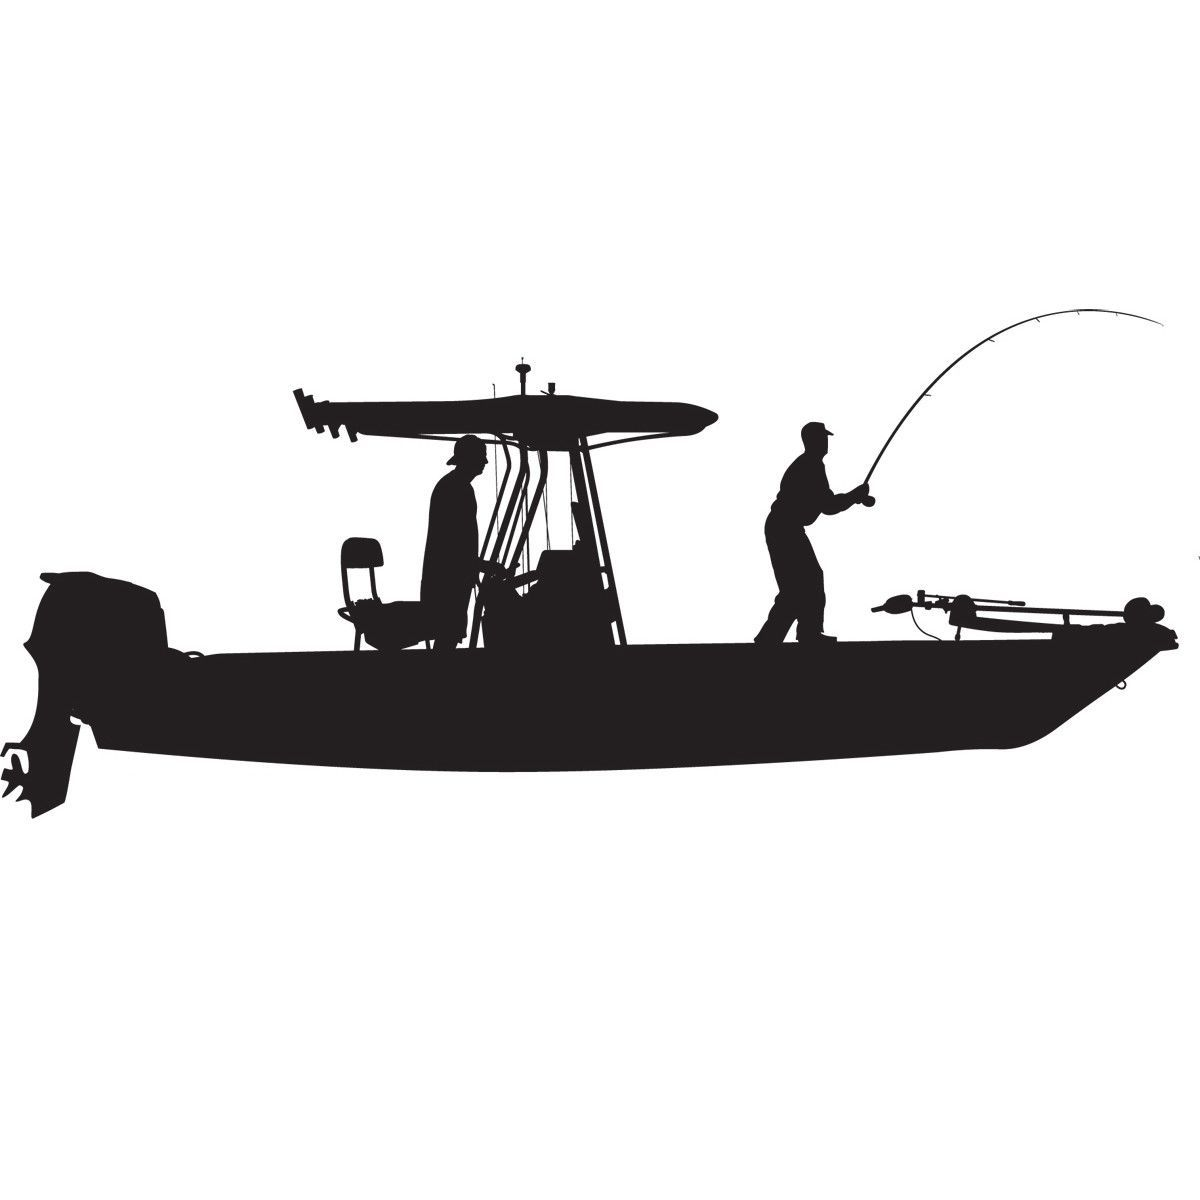 Skiff Life TTop Flats Console Fishing BoatCar Decal Stickers - Bullet bass boat decalsbass boat decals ebay